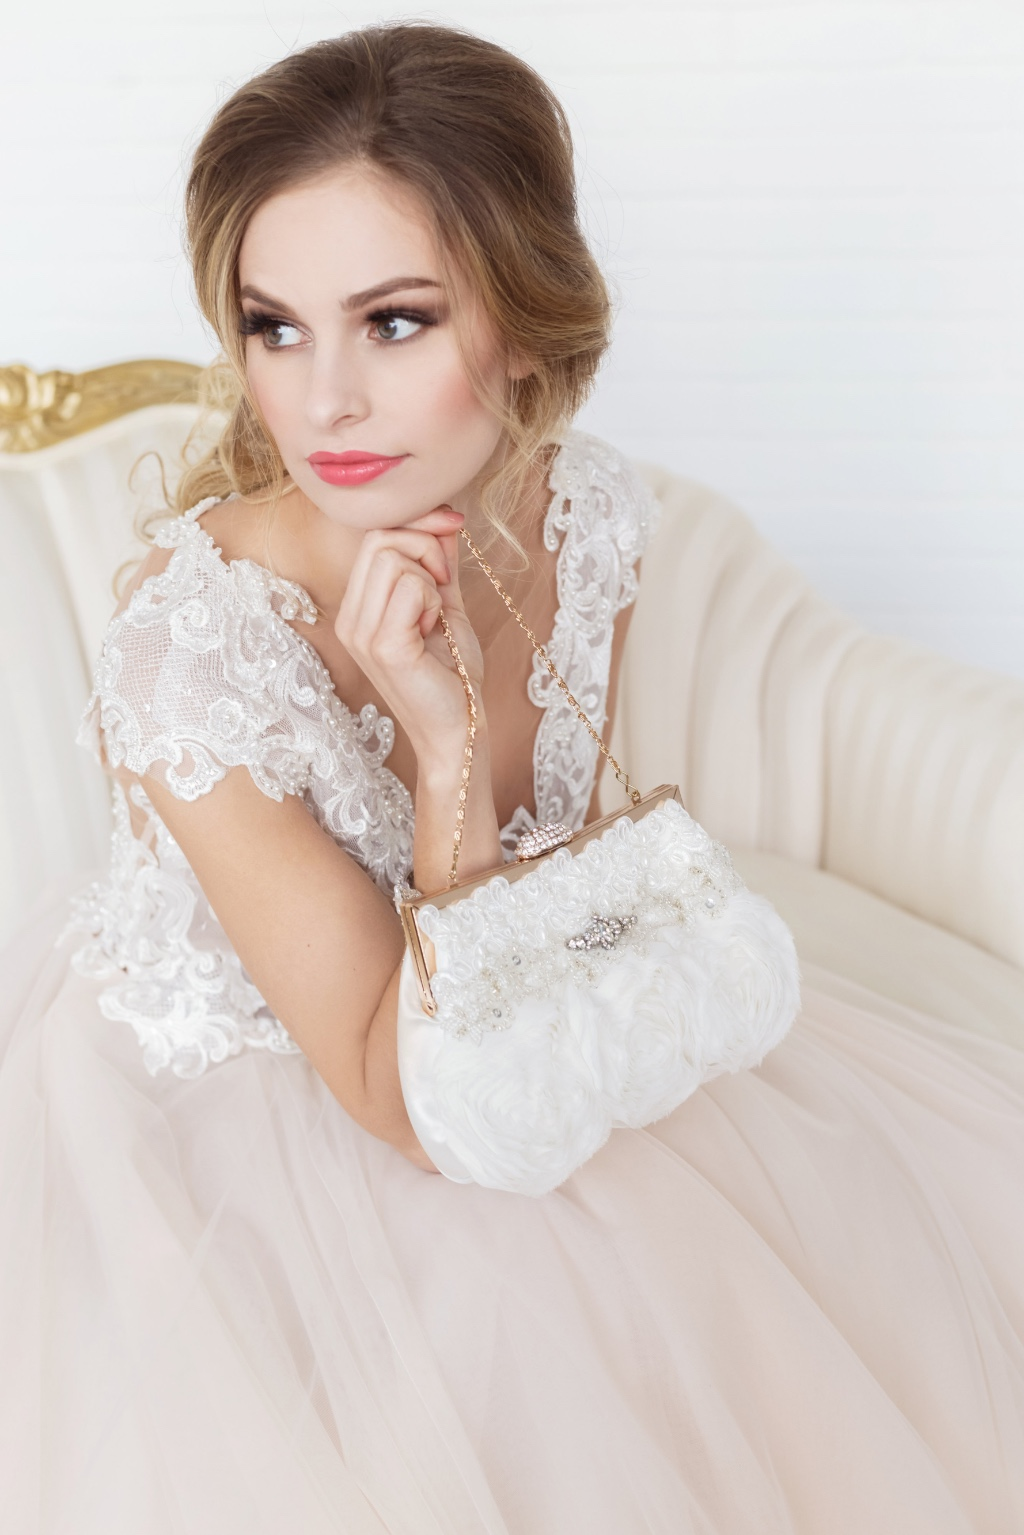 Beautiful Couture clutches made for a glamorous bride